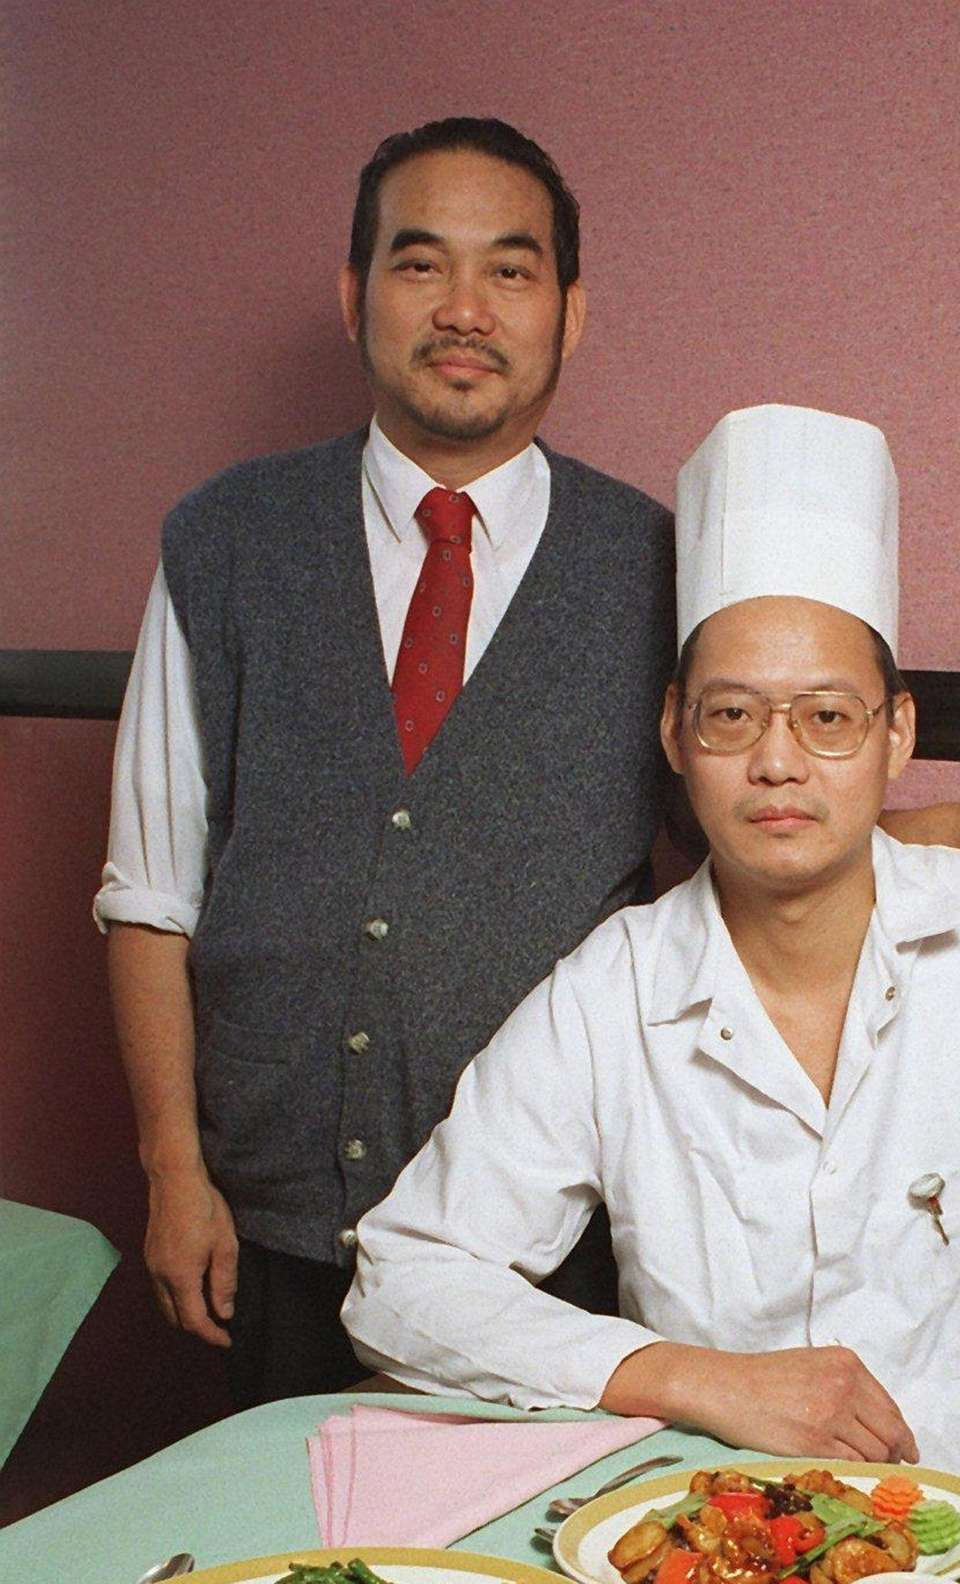 John and Peter Chau, owners of Hunam Restaurant